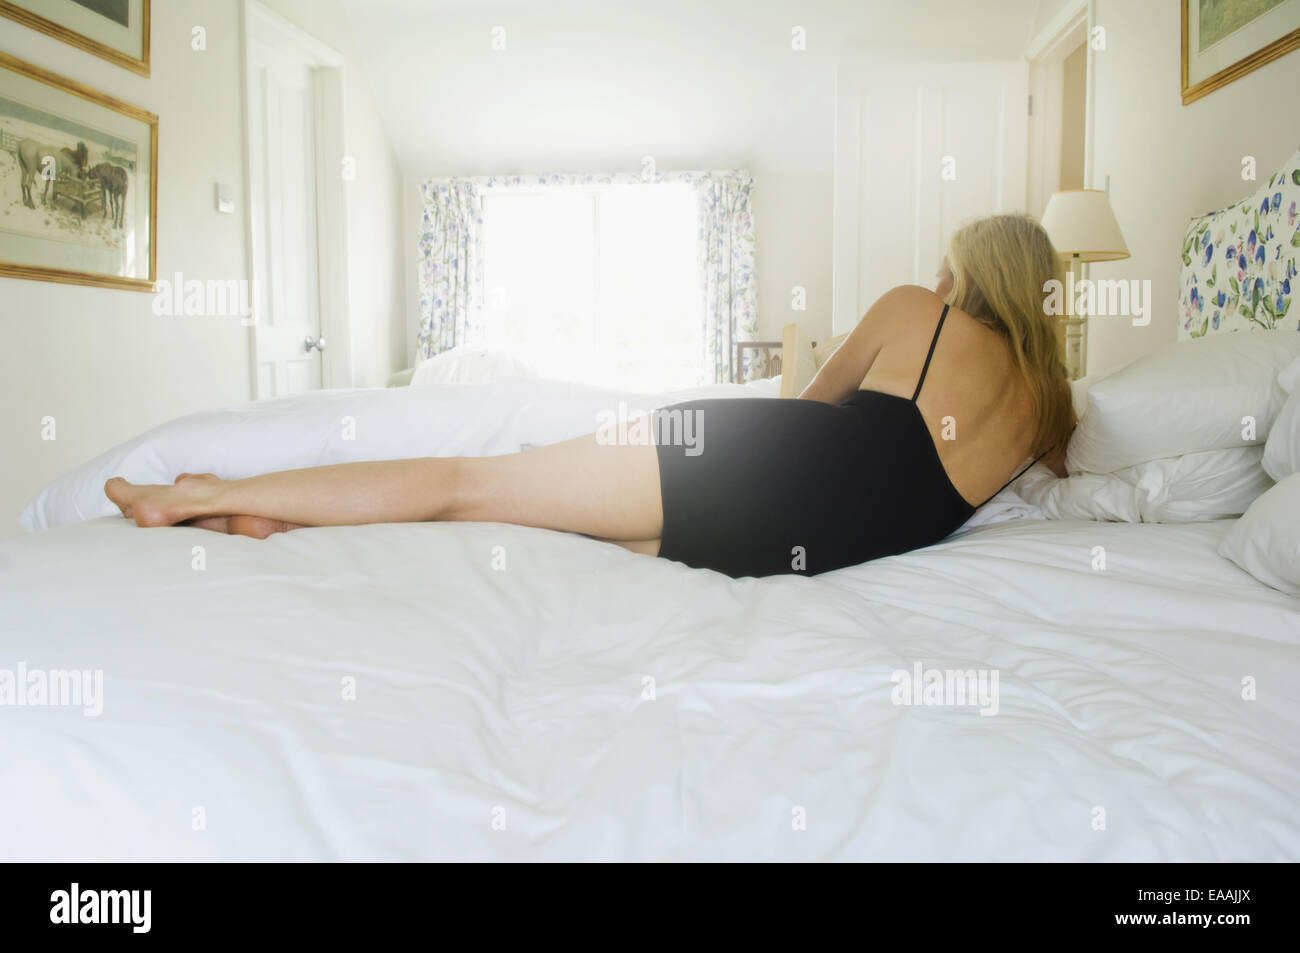 A blonde haired woman lying on her side on a bed. - Stock Image